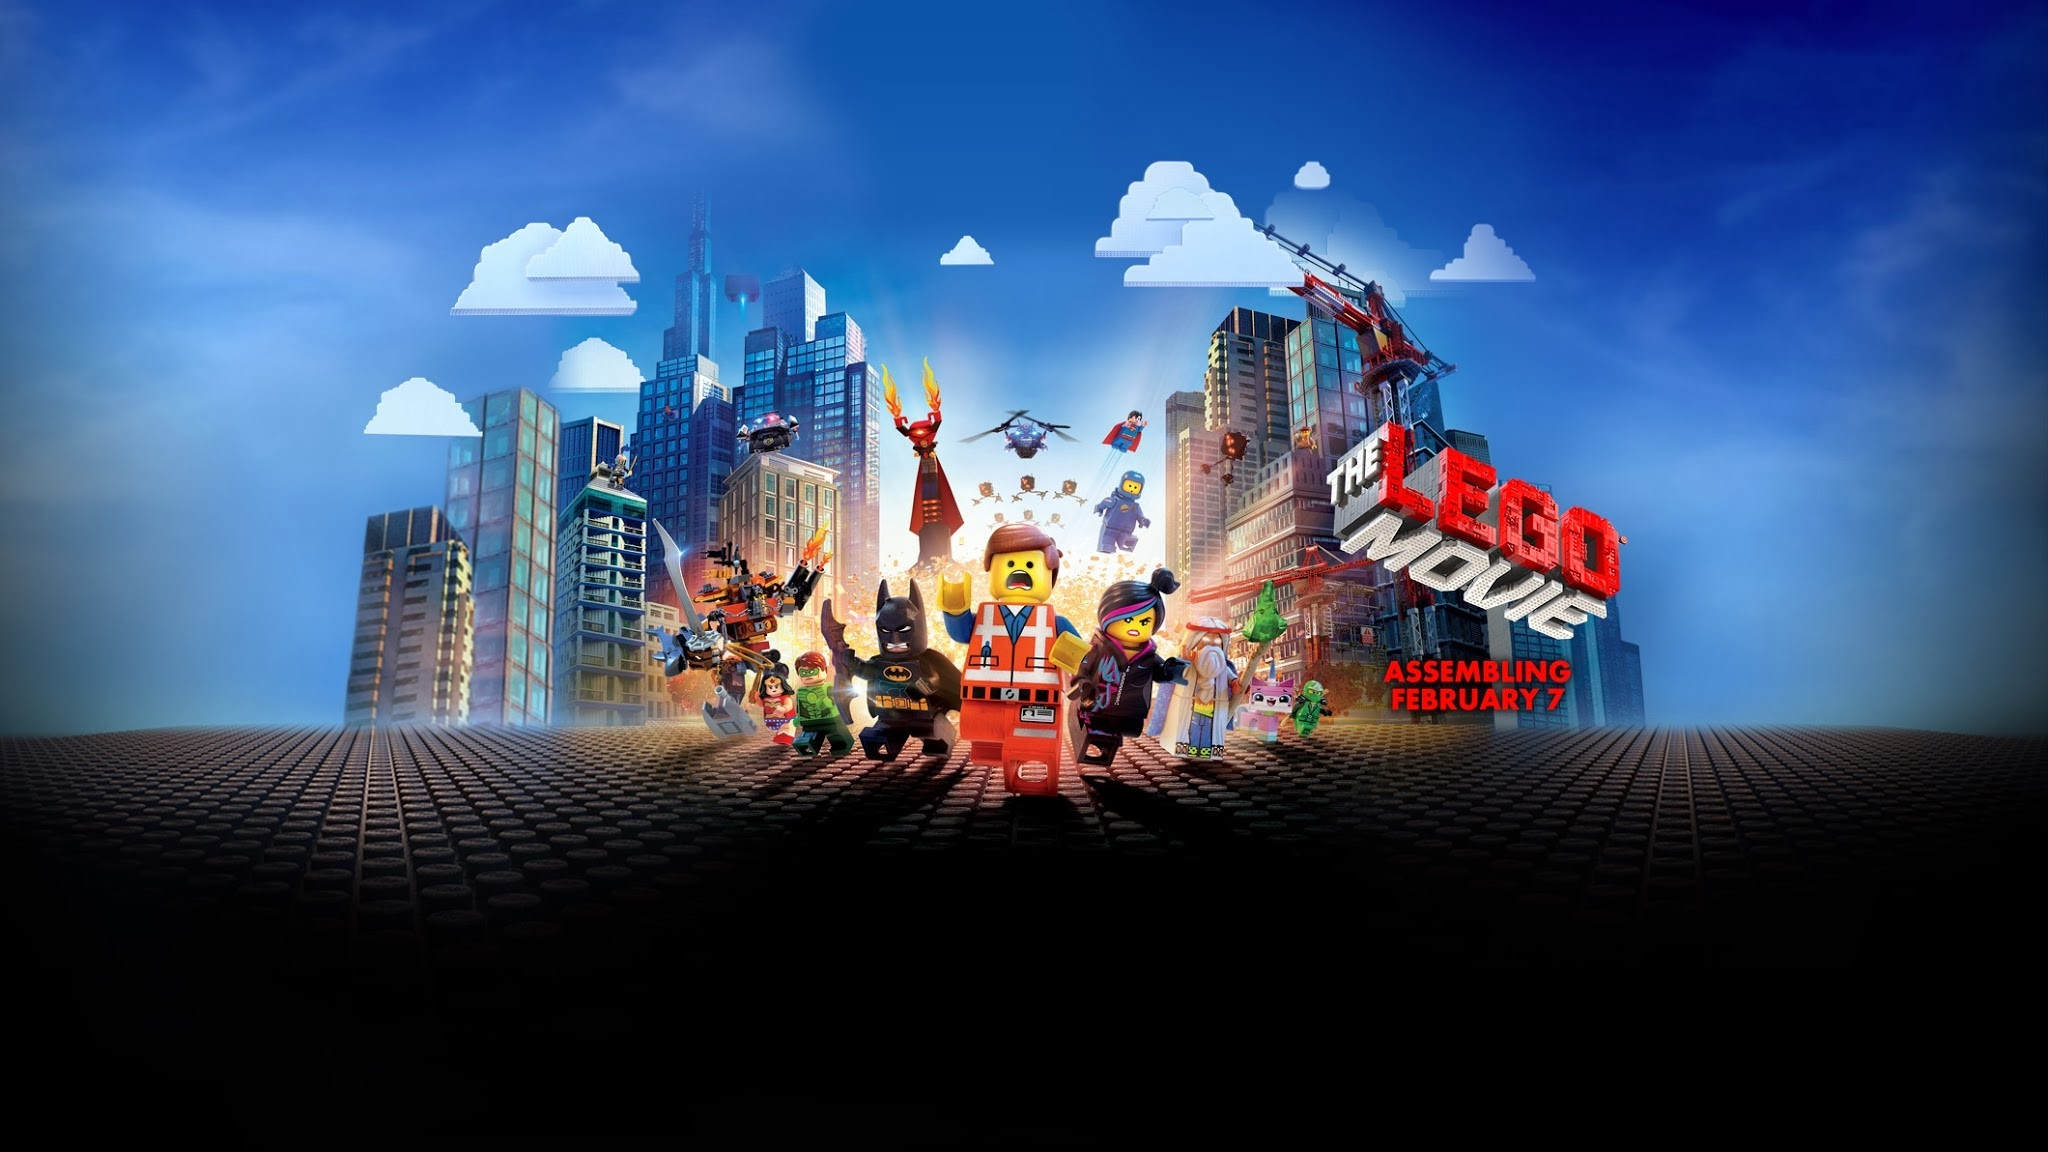 The Lego Movie wallpaper 4